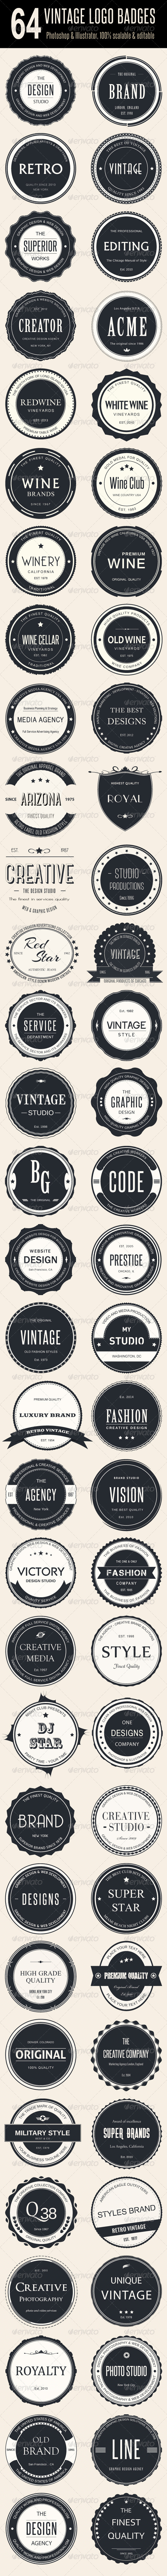 GraphicRiver Bundle 64 Vintage Logo Badges 6878653